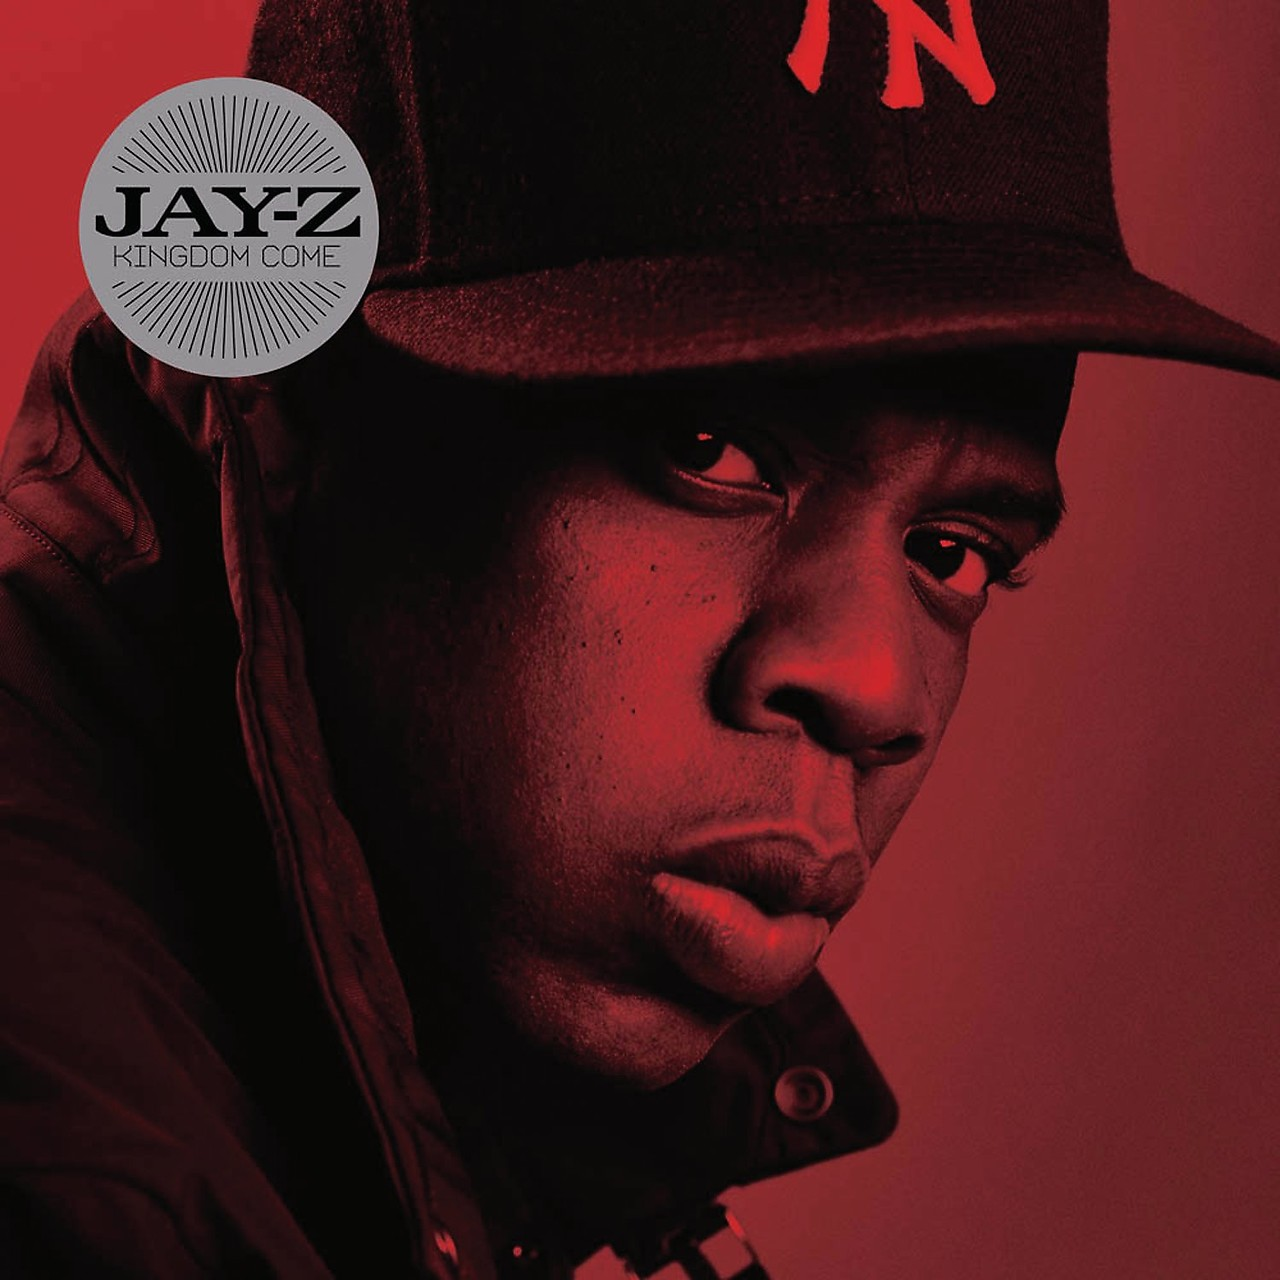 Kingdom come by jay z arena music malvernweather Images